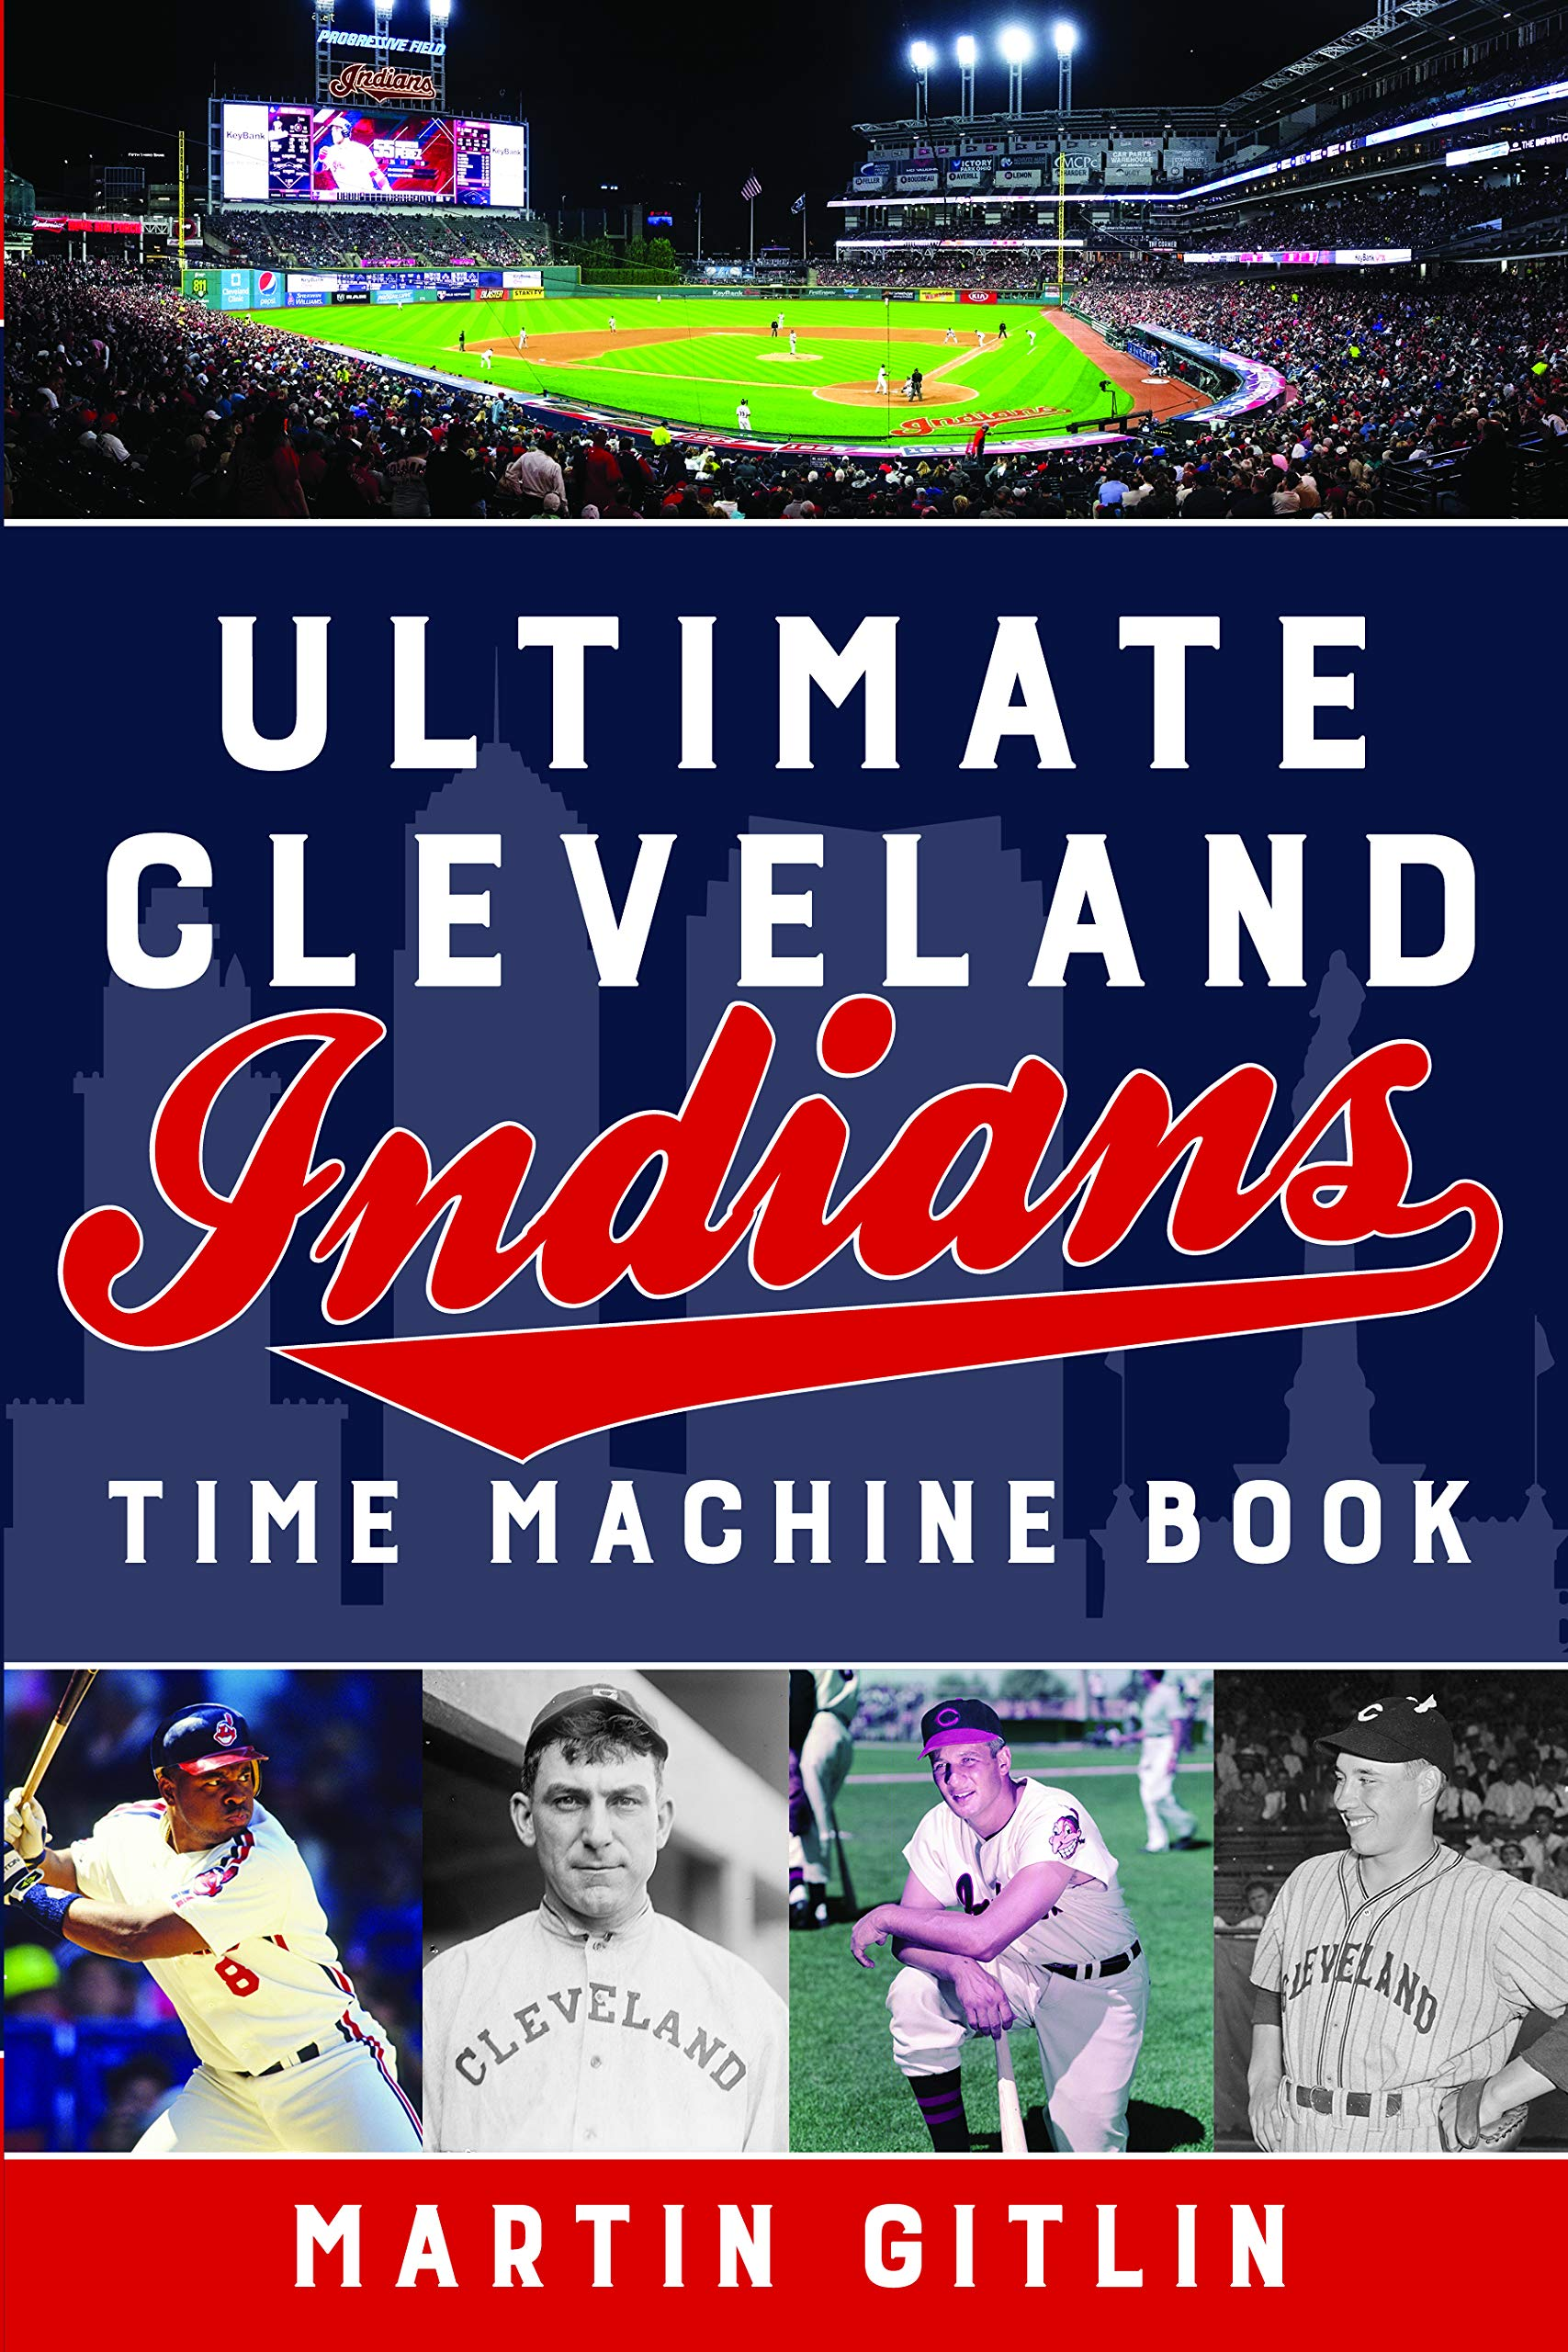 finest selection 1d46c 8dd39 Ultimate Cleveland Indians Time Machine Book: Martin Gitlin ...